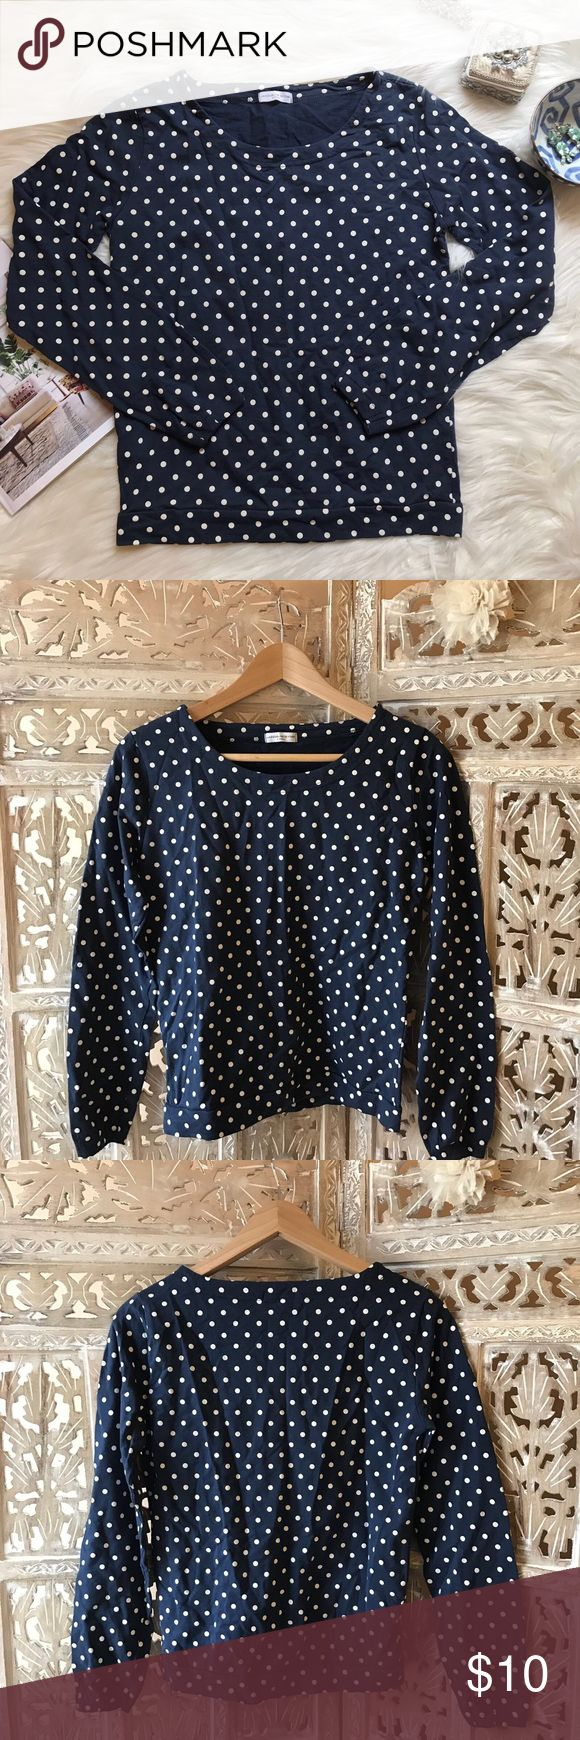 "Jacqueline de Yong polka dot long sleeve tee XS Jacqueline de Yong polka dot long sleeve tee XS.  Very good condition. From Yoox. Dress it up with a necklace, heels and a skirt. Dress it down with jeans and converse. Across chest about 17"". Top length about 22"". Jacqueline de Yong Tops Tees - Long Sleeve"